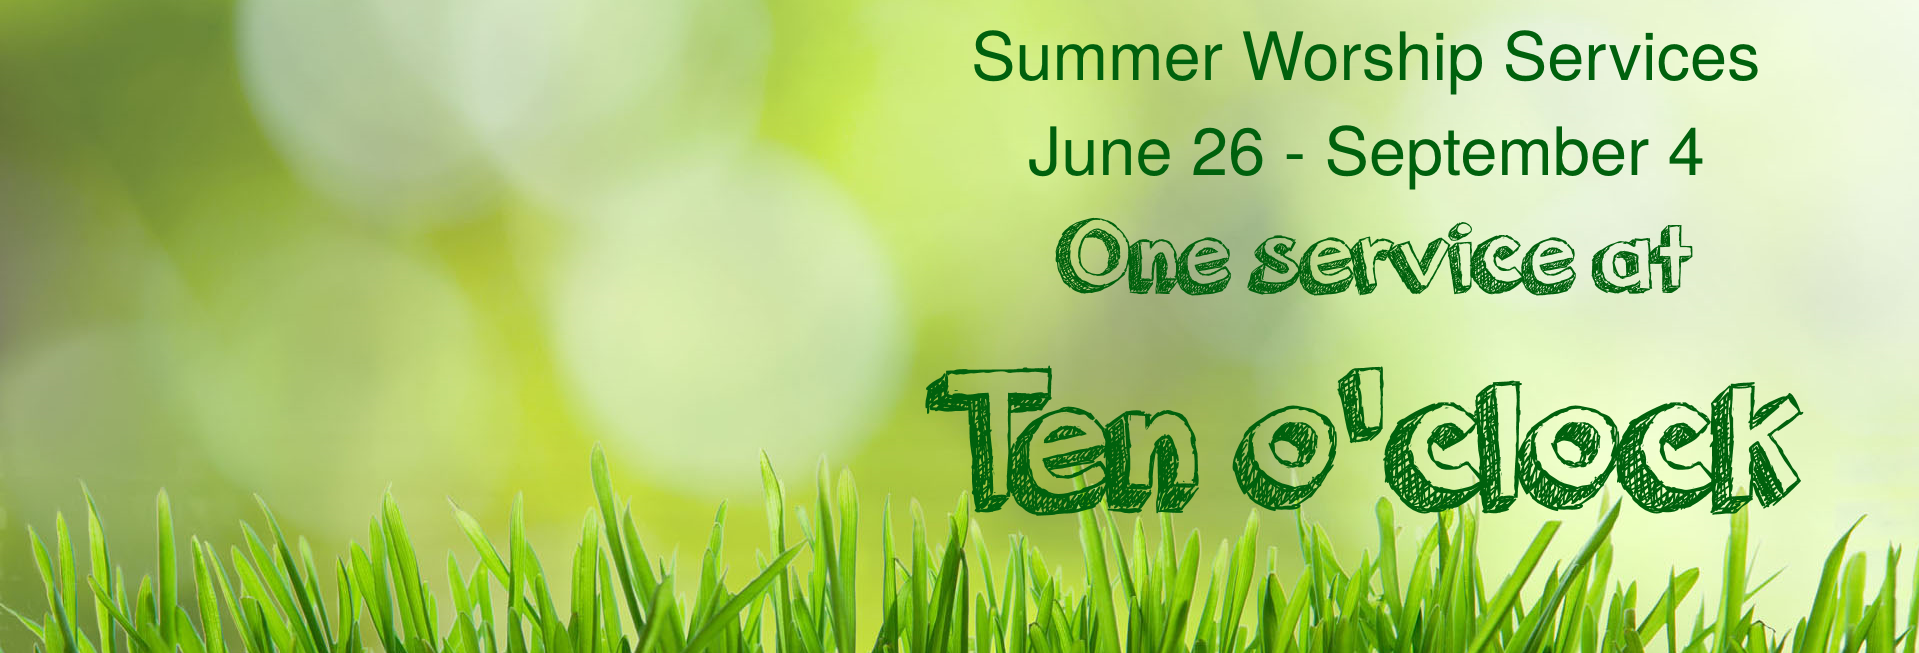 Summer Worship Services New time beginning June 26!